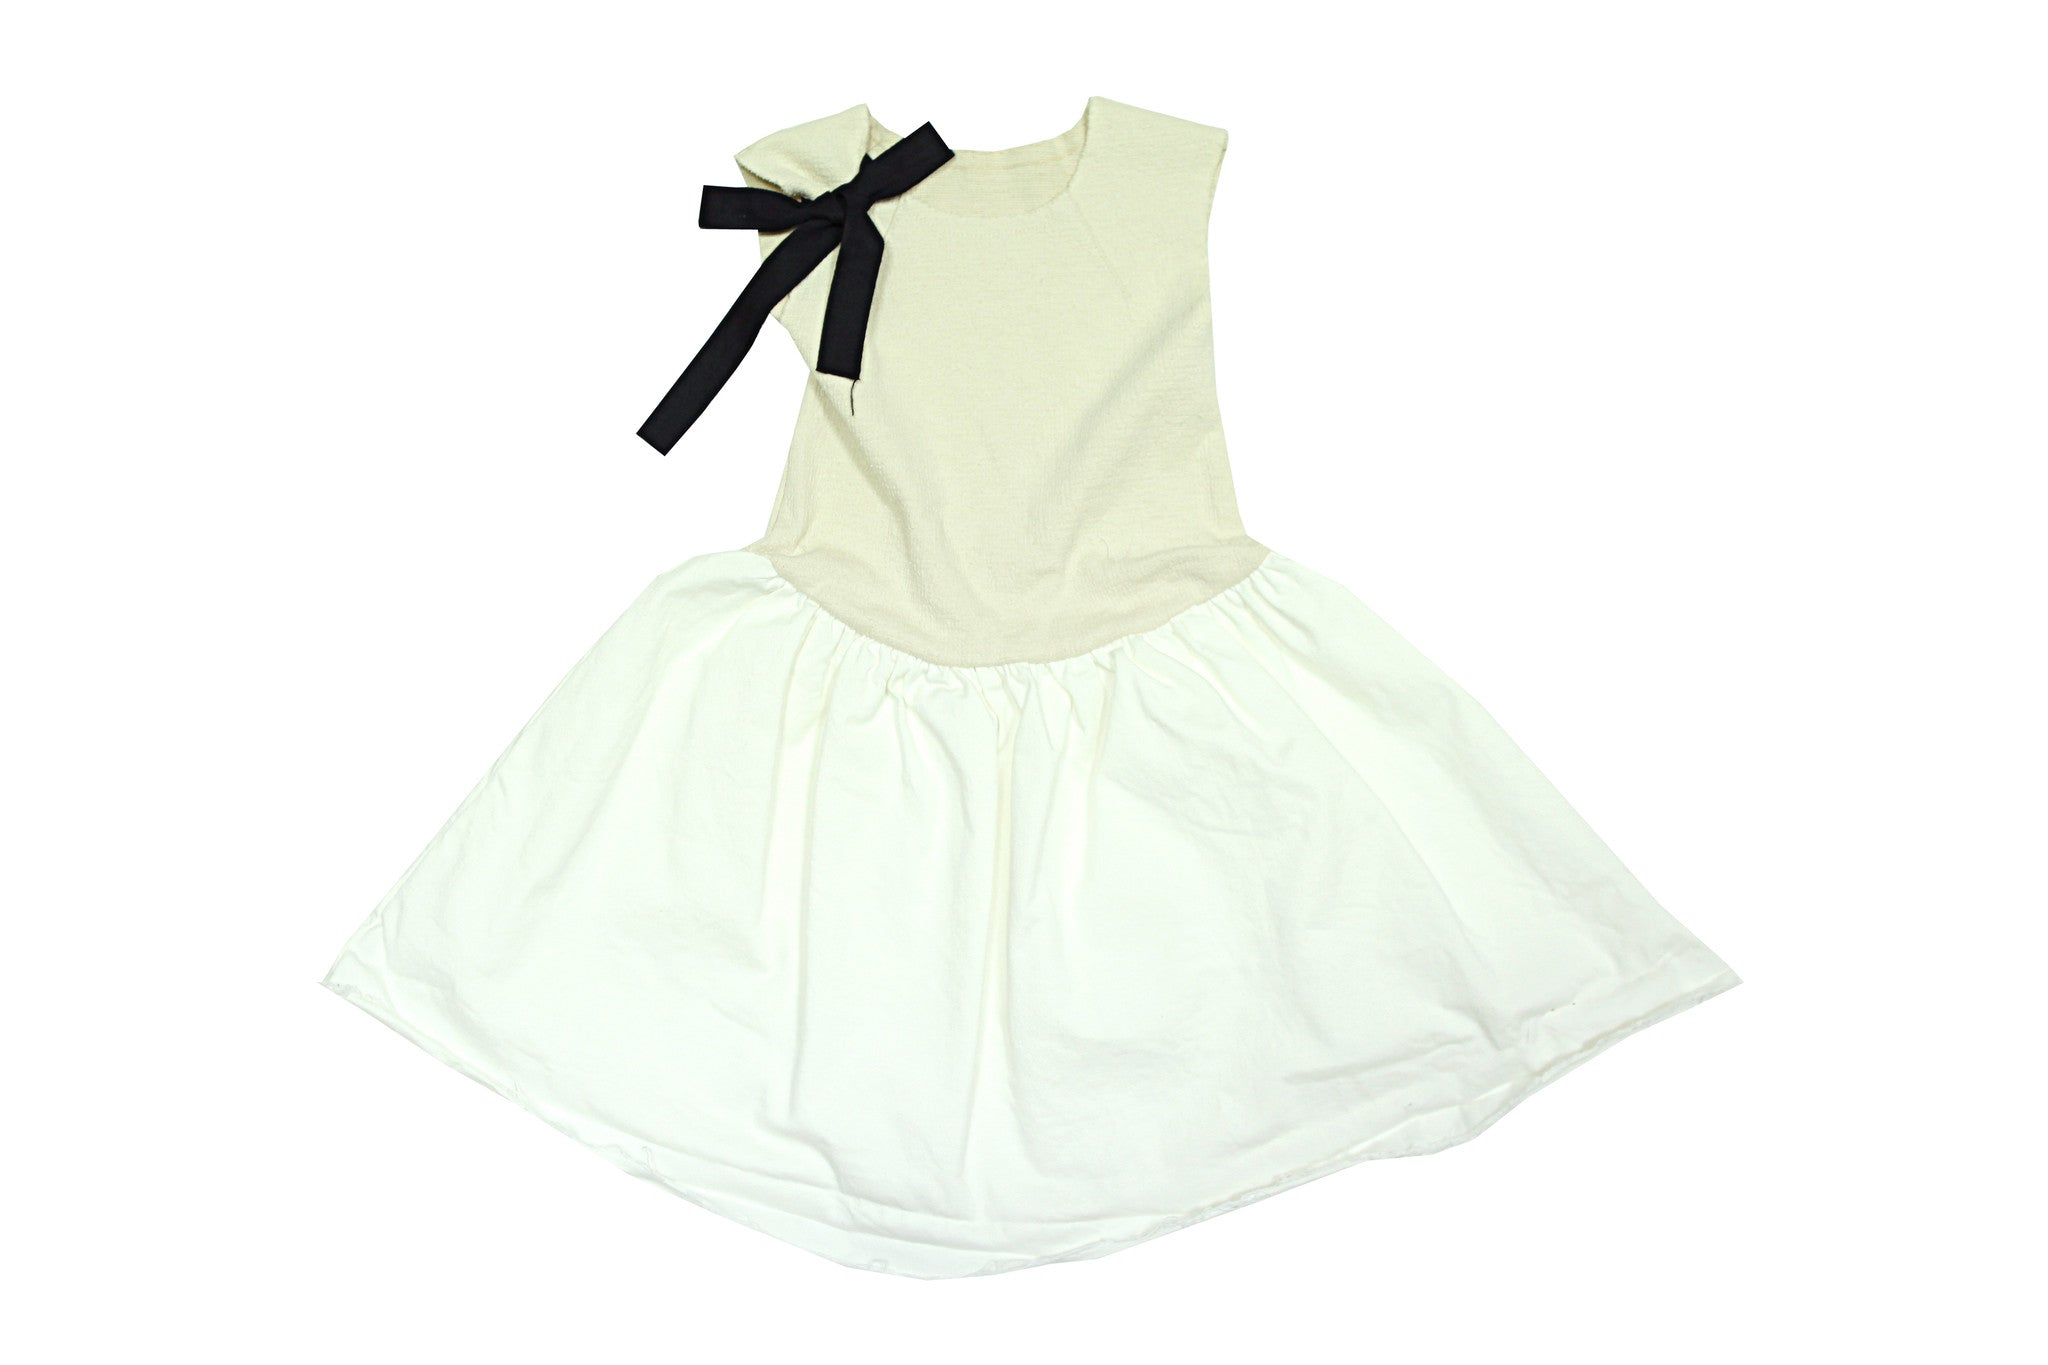 Tambere Cream Dress - Ladida